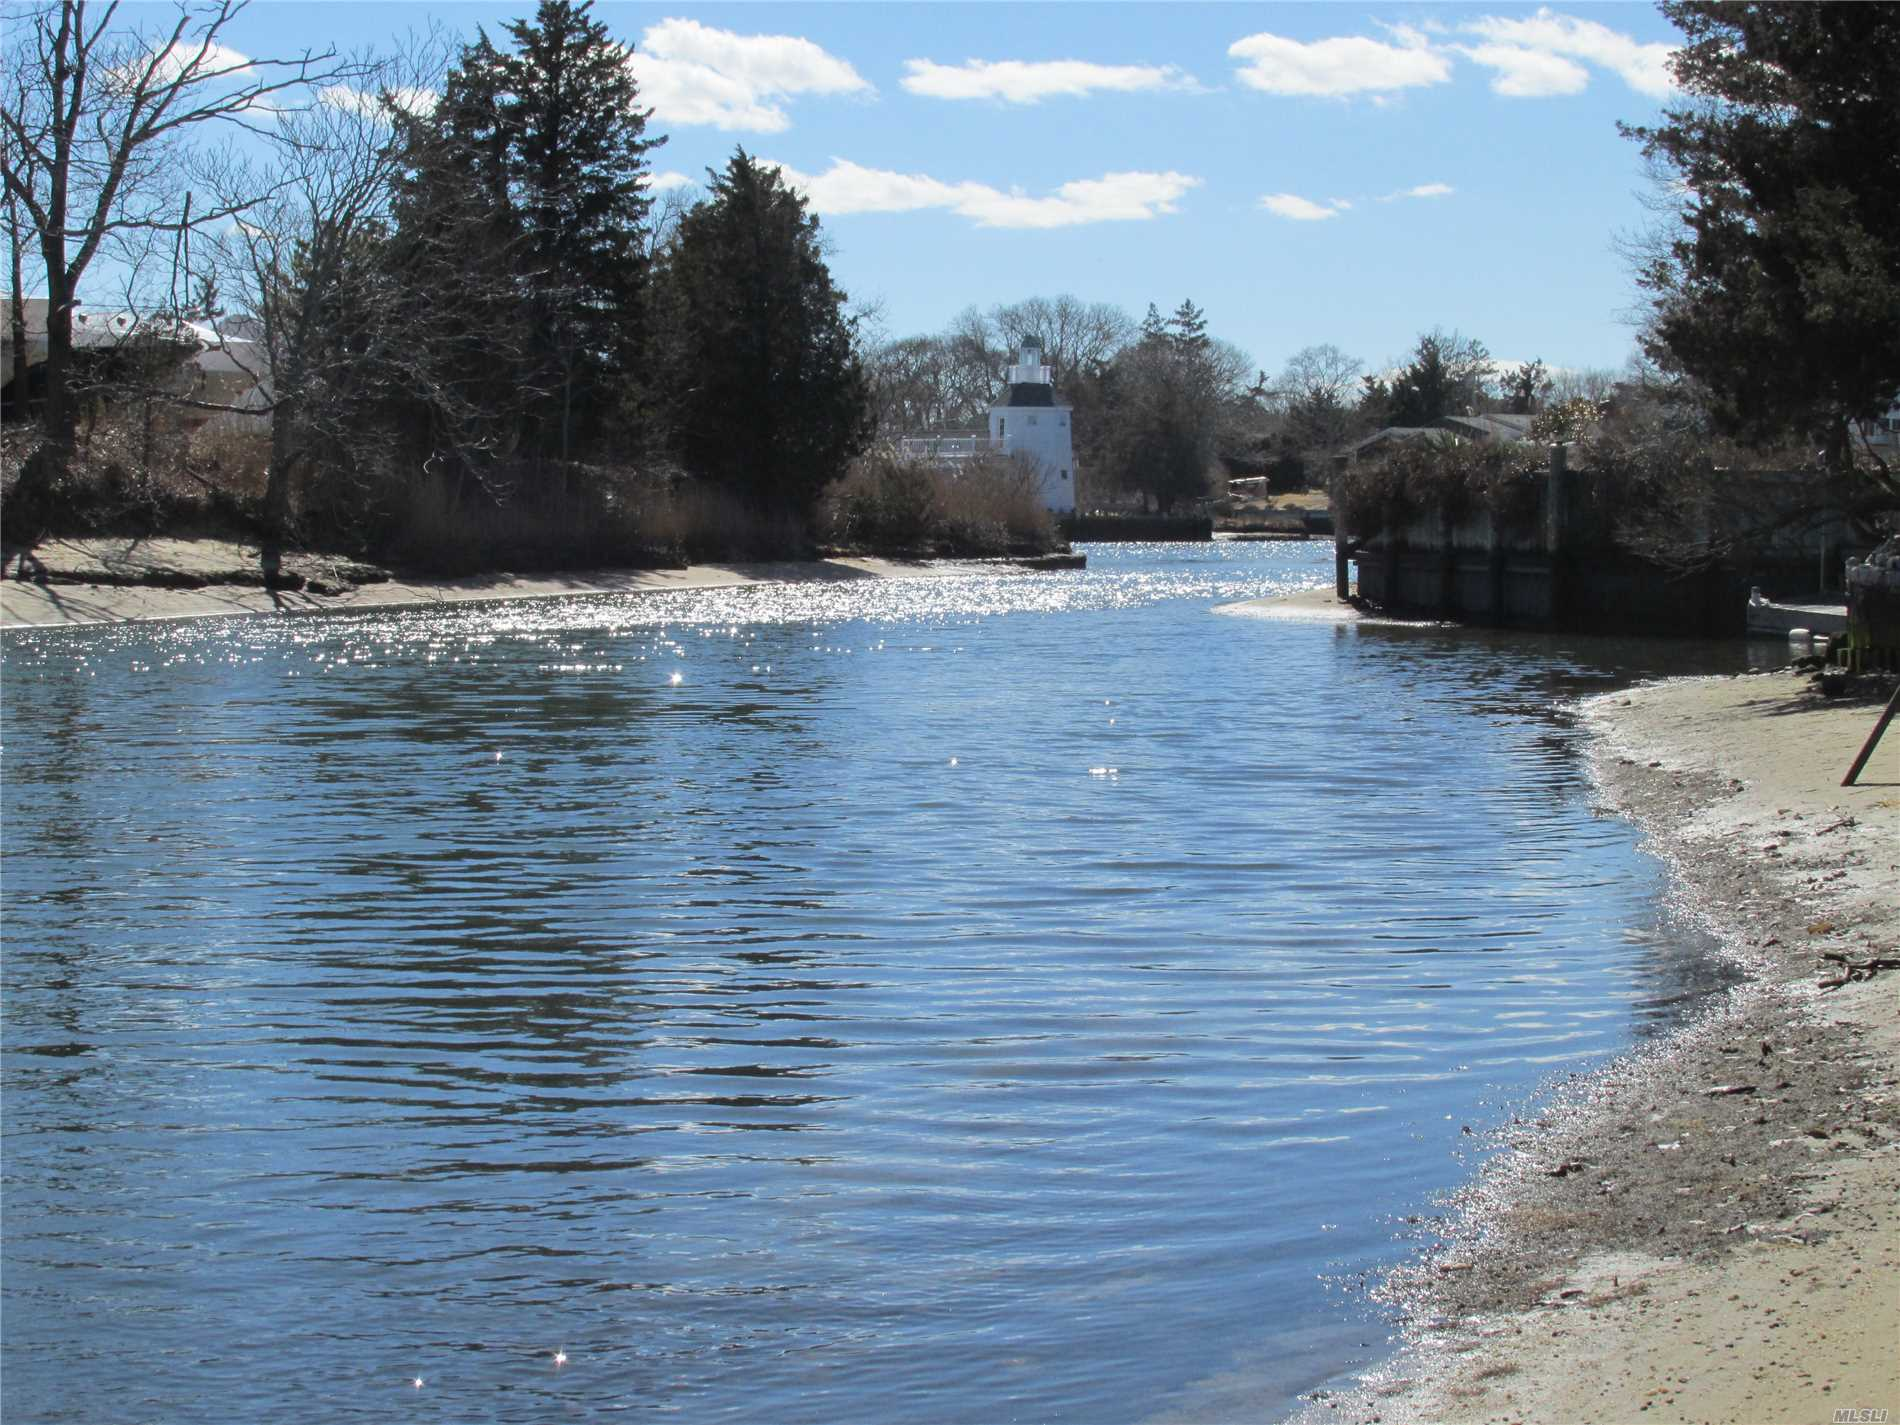 Sheltered Deep Waterfront On James Creek - .39 Acre Lot - 80' Frontage - Direct Access To Peconic Bay - Bay Beaches & Marina Nearby - Motivated Seller - Owner Financing May Be Available - Attached Survey From 2007 Has Site Plan For House/Dock - No Representation Is Being Made To The Feasibility Of Those Plans - Buyer Should Do Their Own Due Diligence Re Permits - Please Do Not Walk Property Without Listing Broker